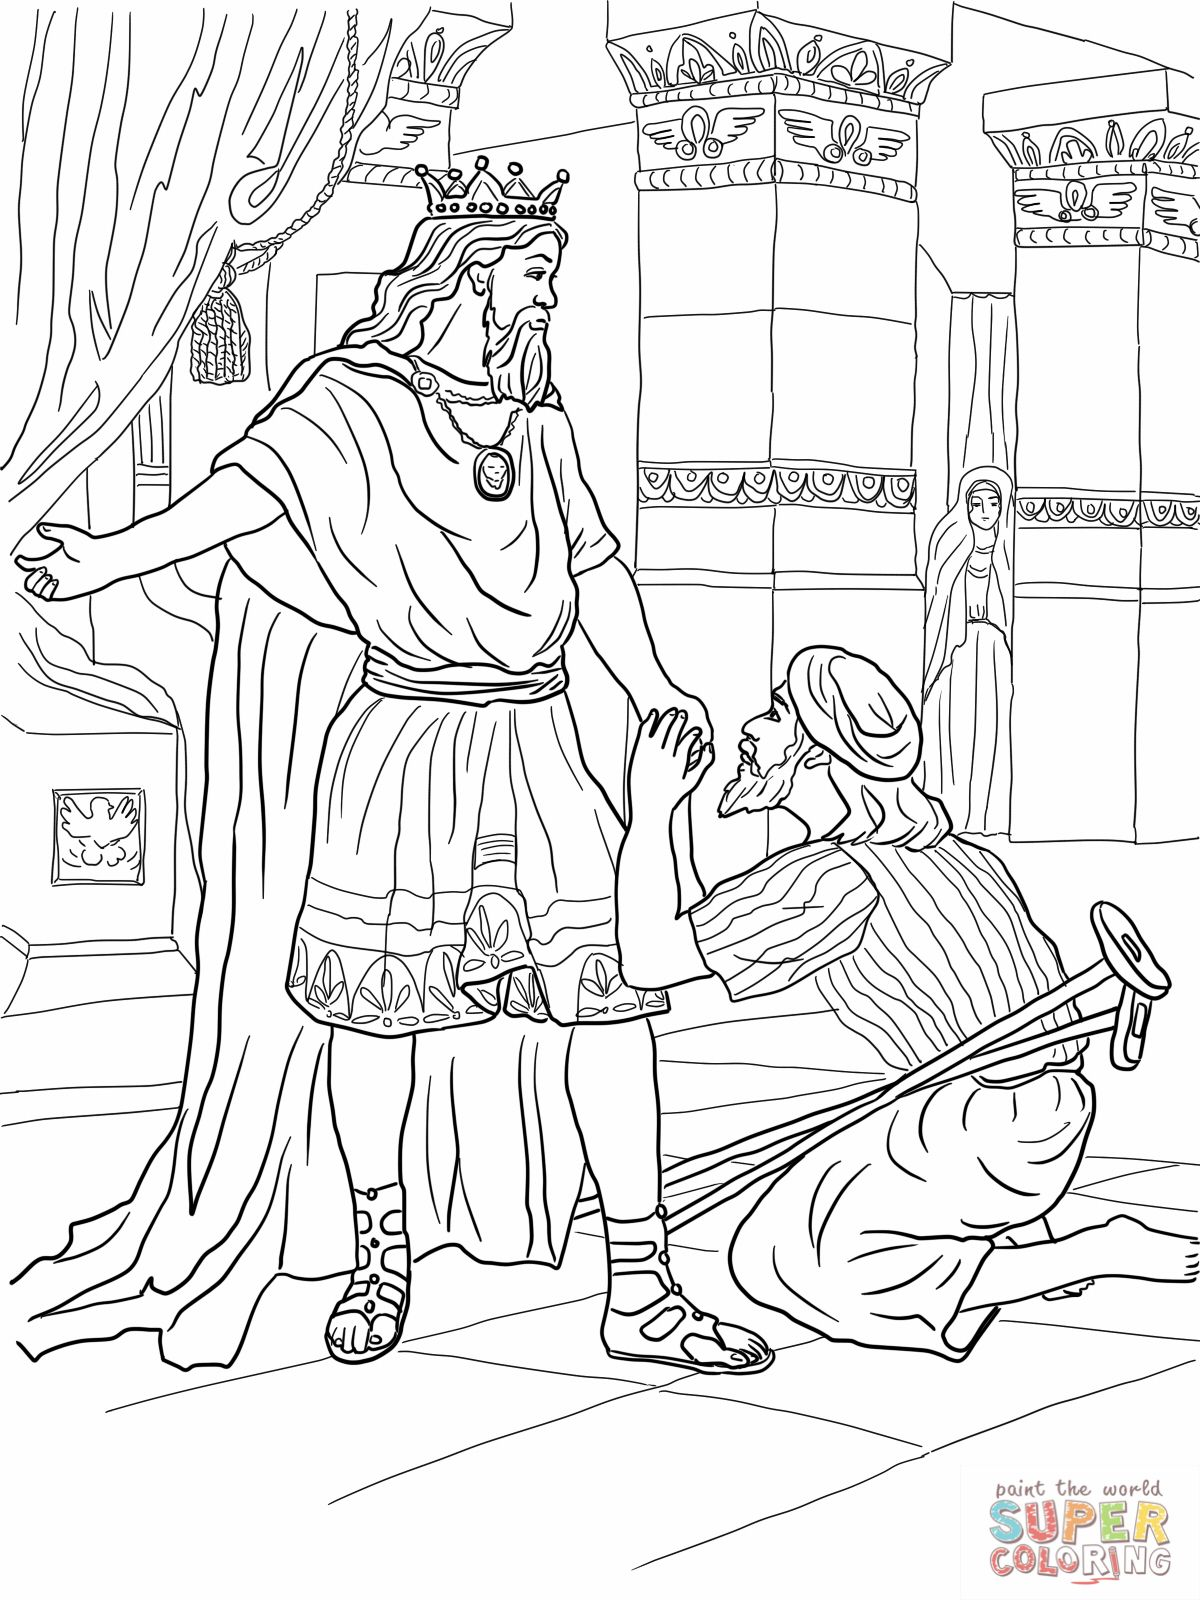 Mephibosheth coloring pages david helps mephibosheth coloring online